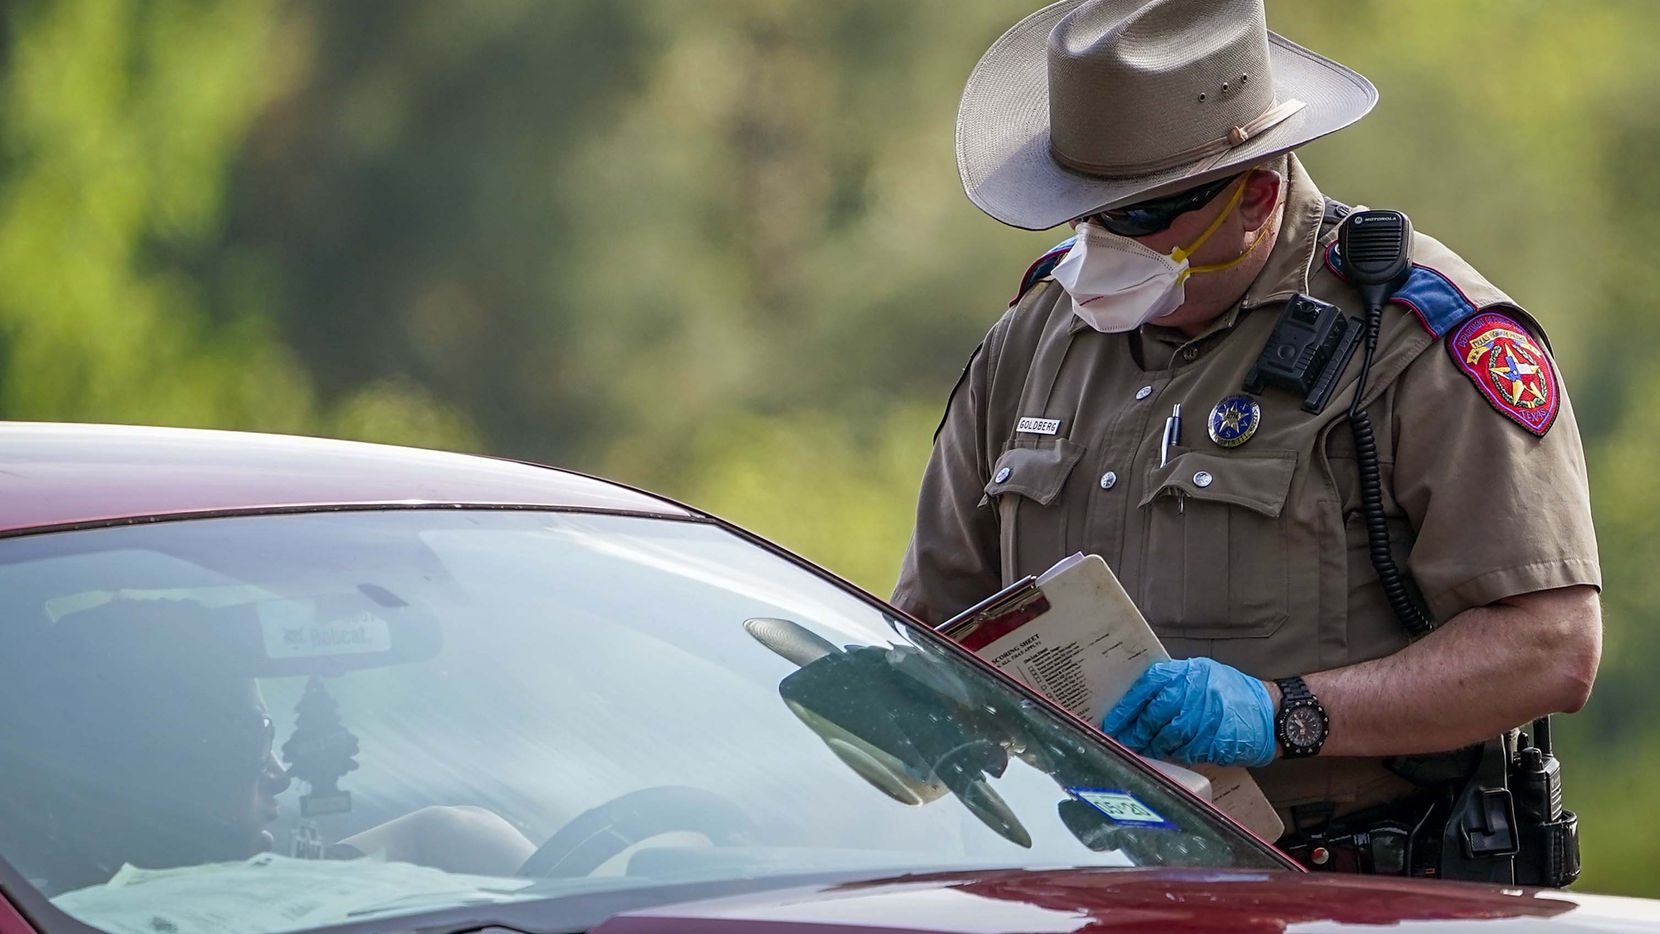 A Texas Department of Public Safety State Trooper talks with a motorist at a checkpoint on I-20 about seven miles west of the Louisiana state line near Waskom, Texas on April 7, 2020. Drivers in personal vehicles Inbound from Louisiana are being screened by DPS troopers to ensure they comply with an executive order by Gov. Greg Abbott requiring travelers from Louisiana and other coronavirus hotspots to self-quarantine for 14 days during their stay in Texas. Commercial vehicles like long haul trucks are waved past the checkpoint.